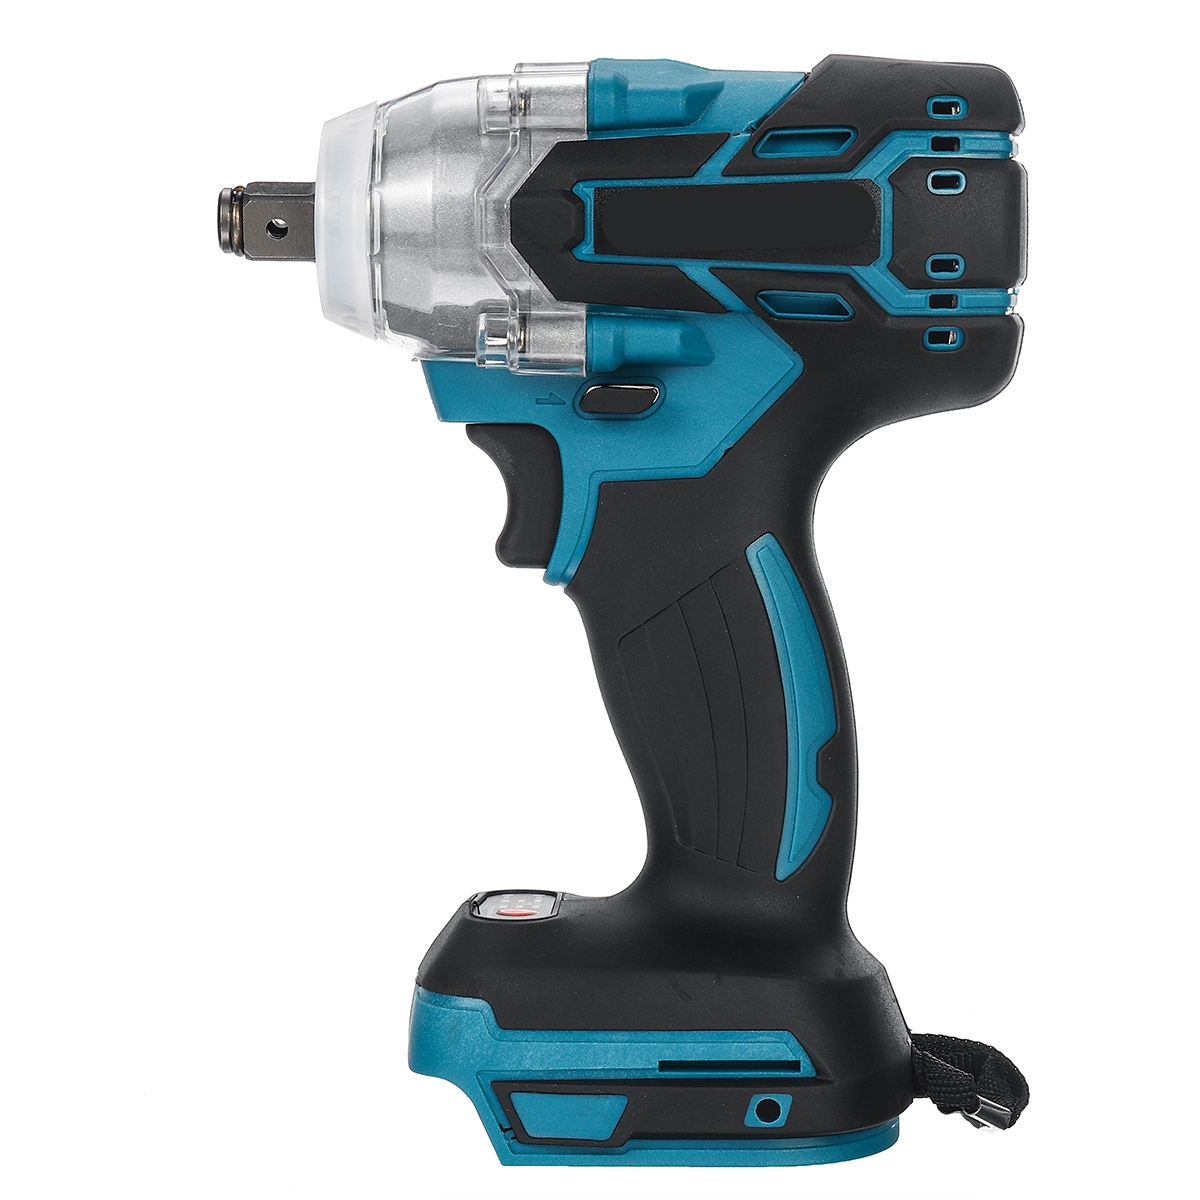 Electric Impact Wrench Brushless Cordless Rechargeable 1/2 inch Wrench Power Tools Compatible 18V Battery